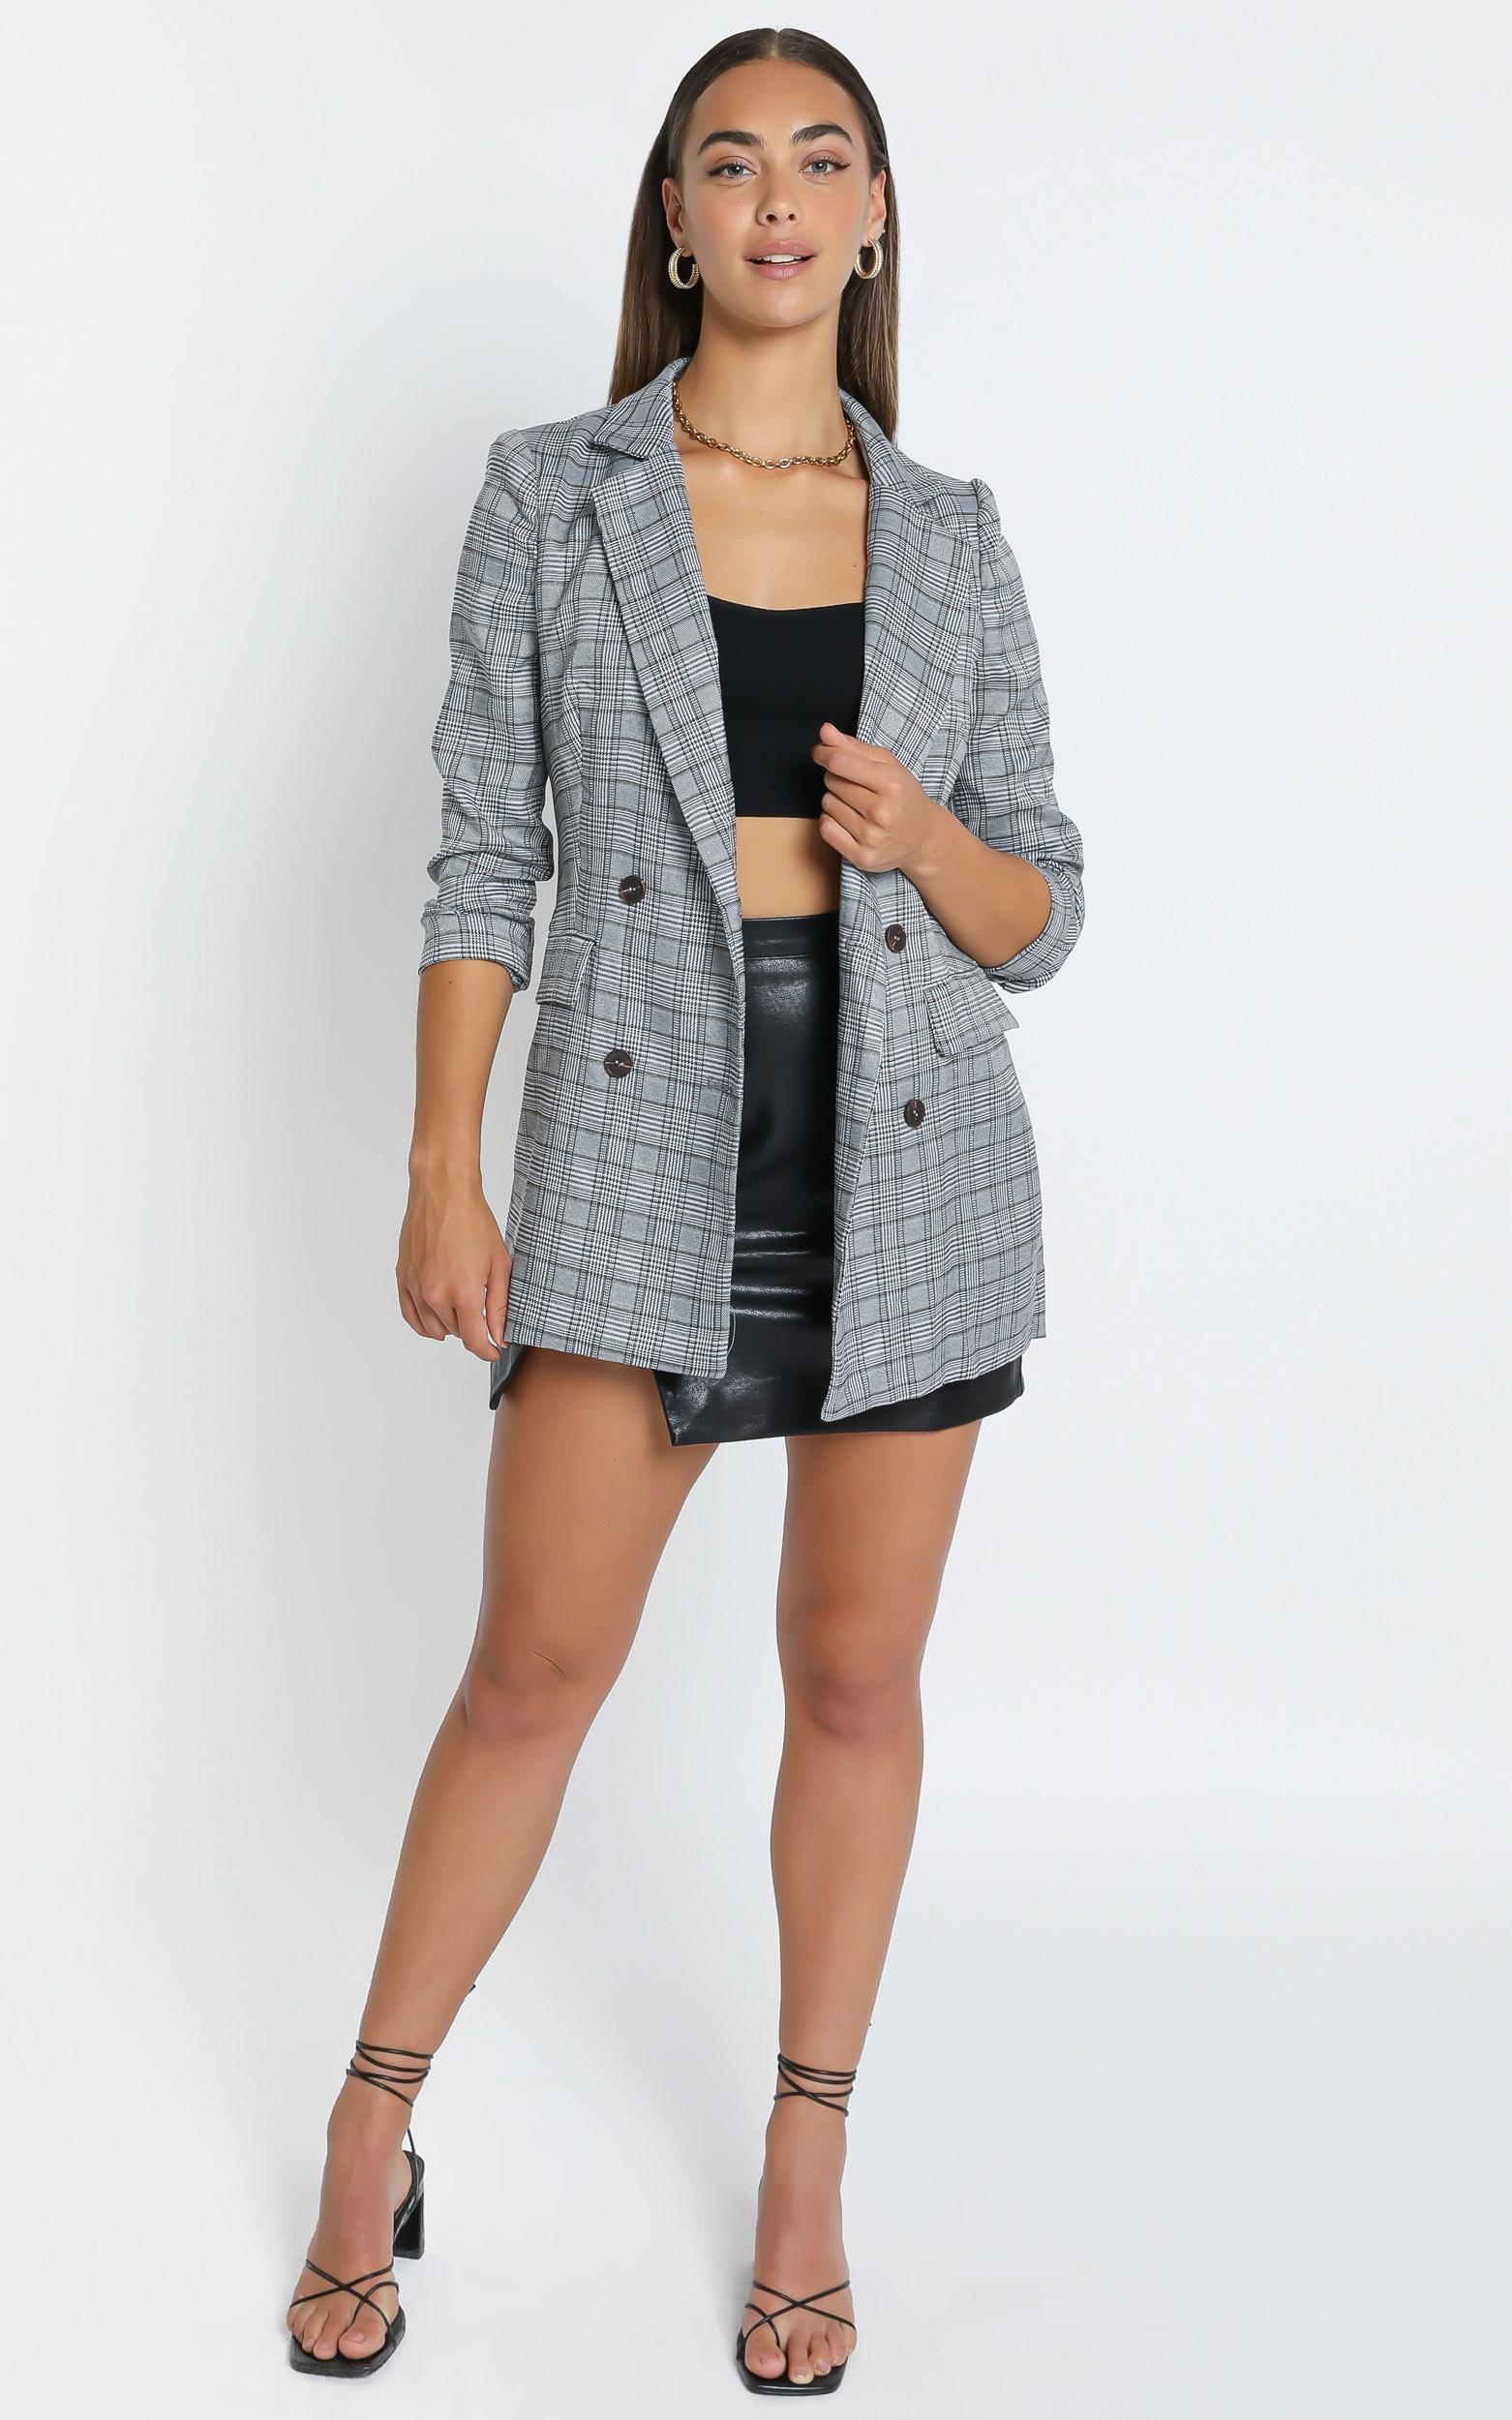 Sort it out Blazer in Grey Check - 4 (XXS), Grey, hi-res image number null